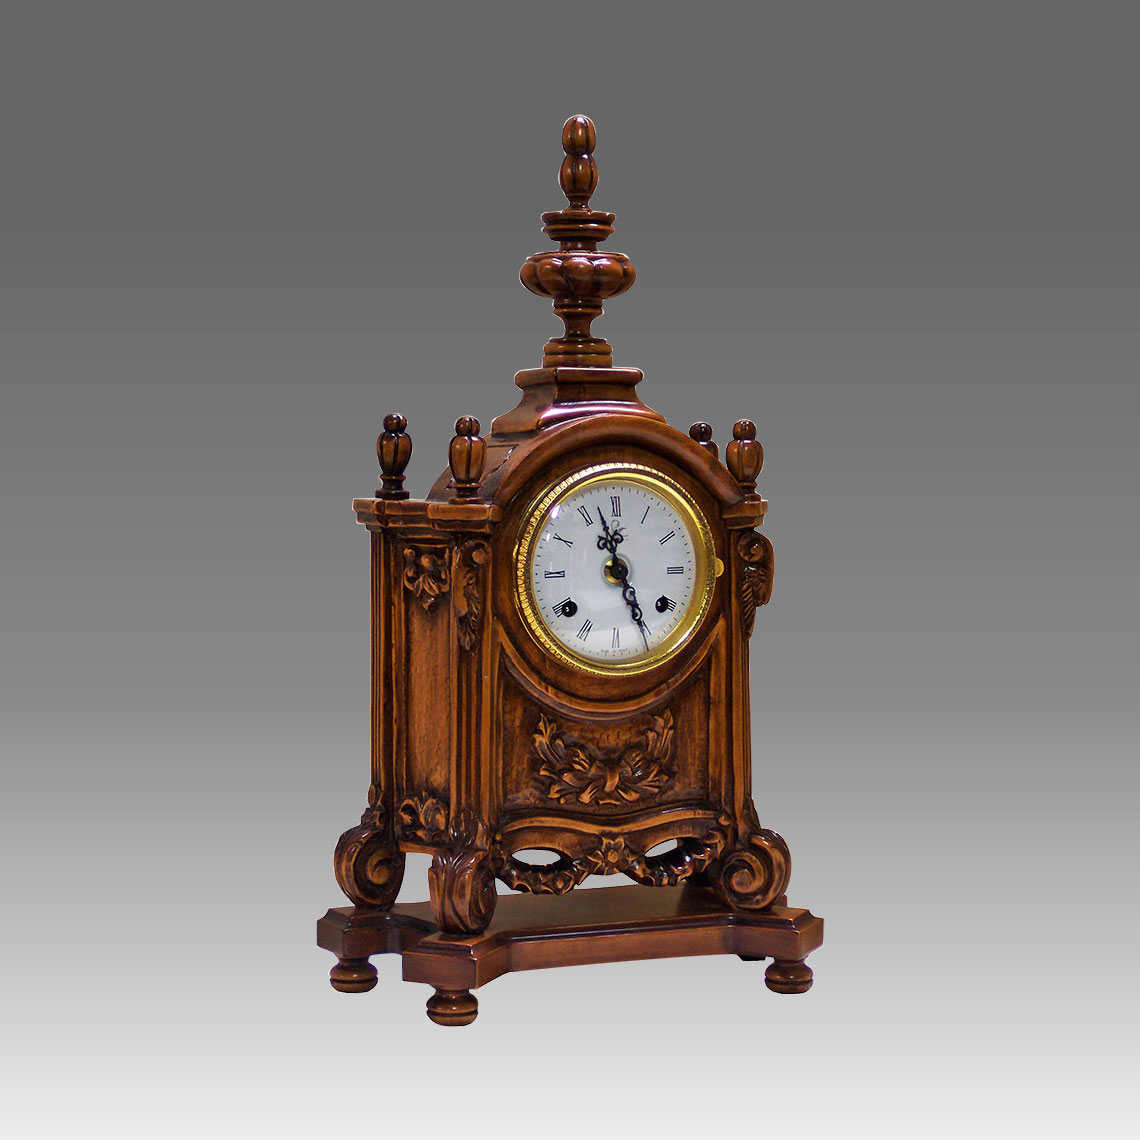 Mante Clock, Table Clock, Cimn Clock, Art.323/1 walnut - Bim Bam melody on Bells, white round dial